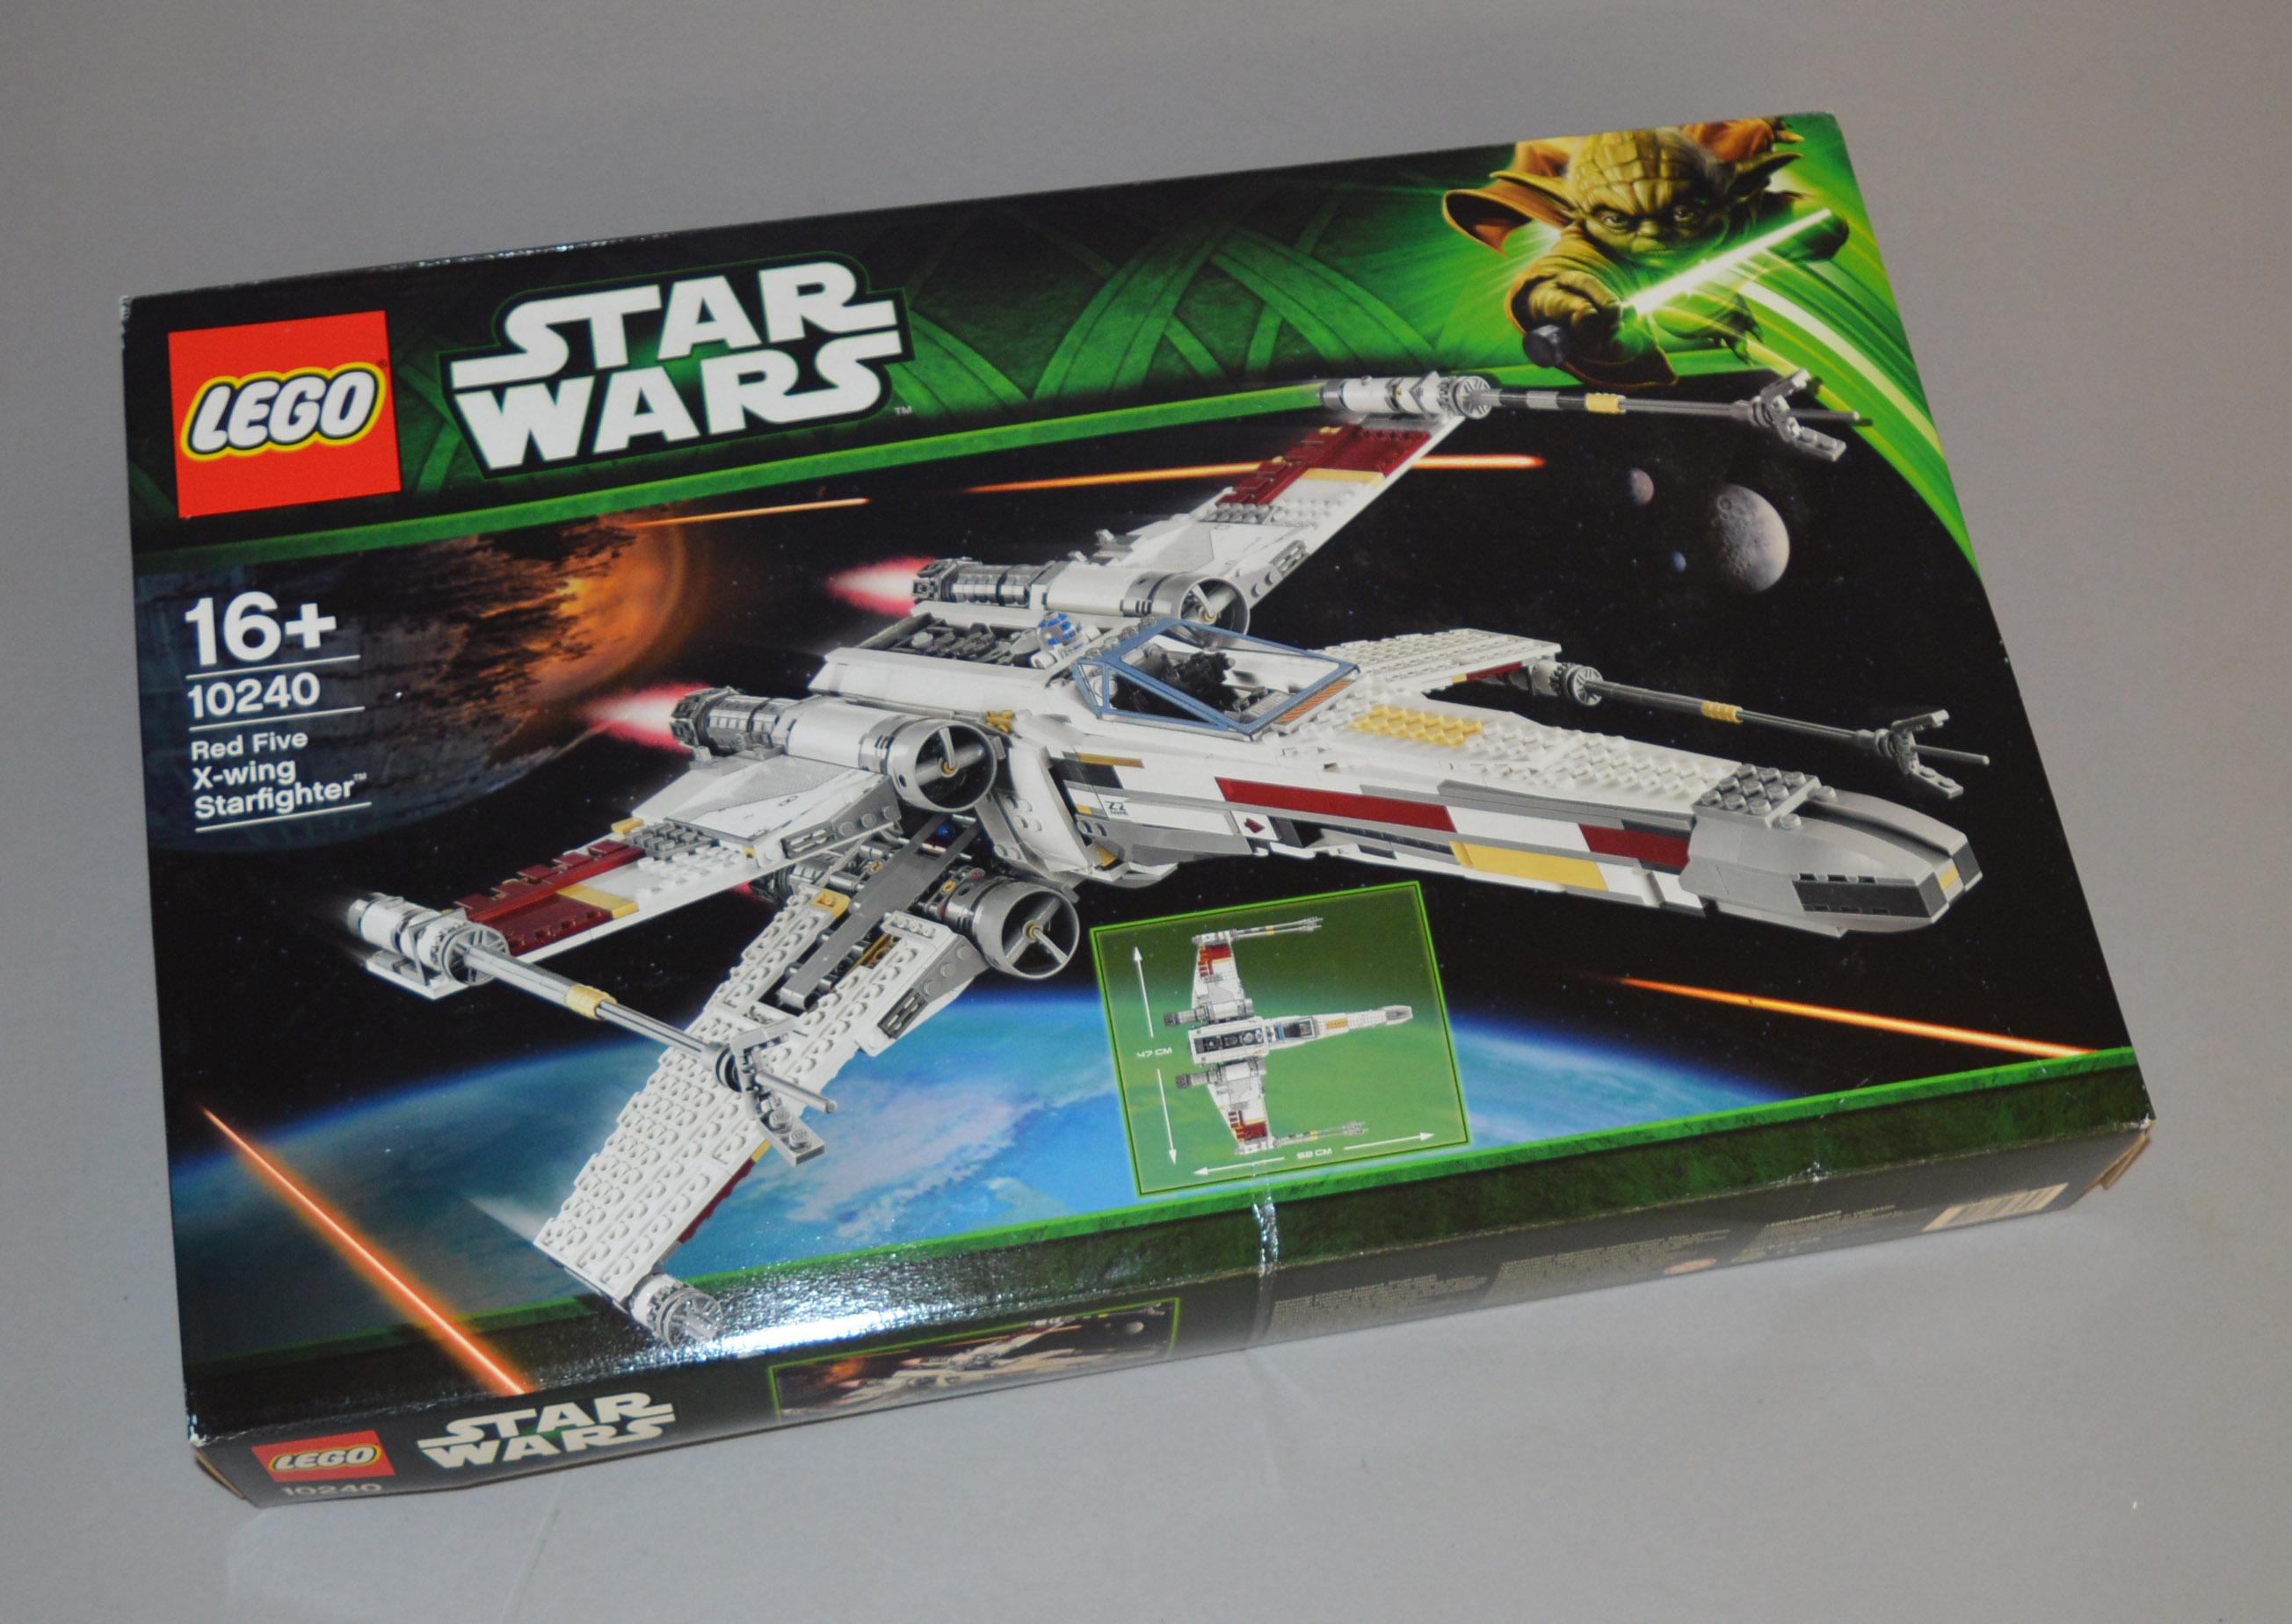 Lot 1 - Lego Star Wars 10240 'Red Five X-wing Starfighter',